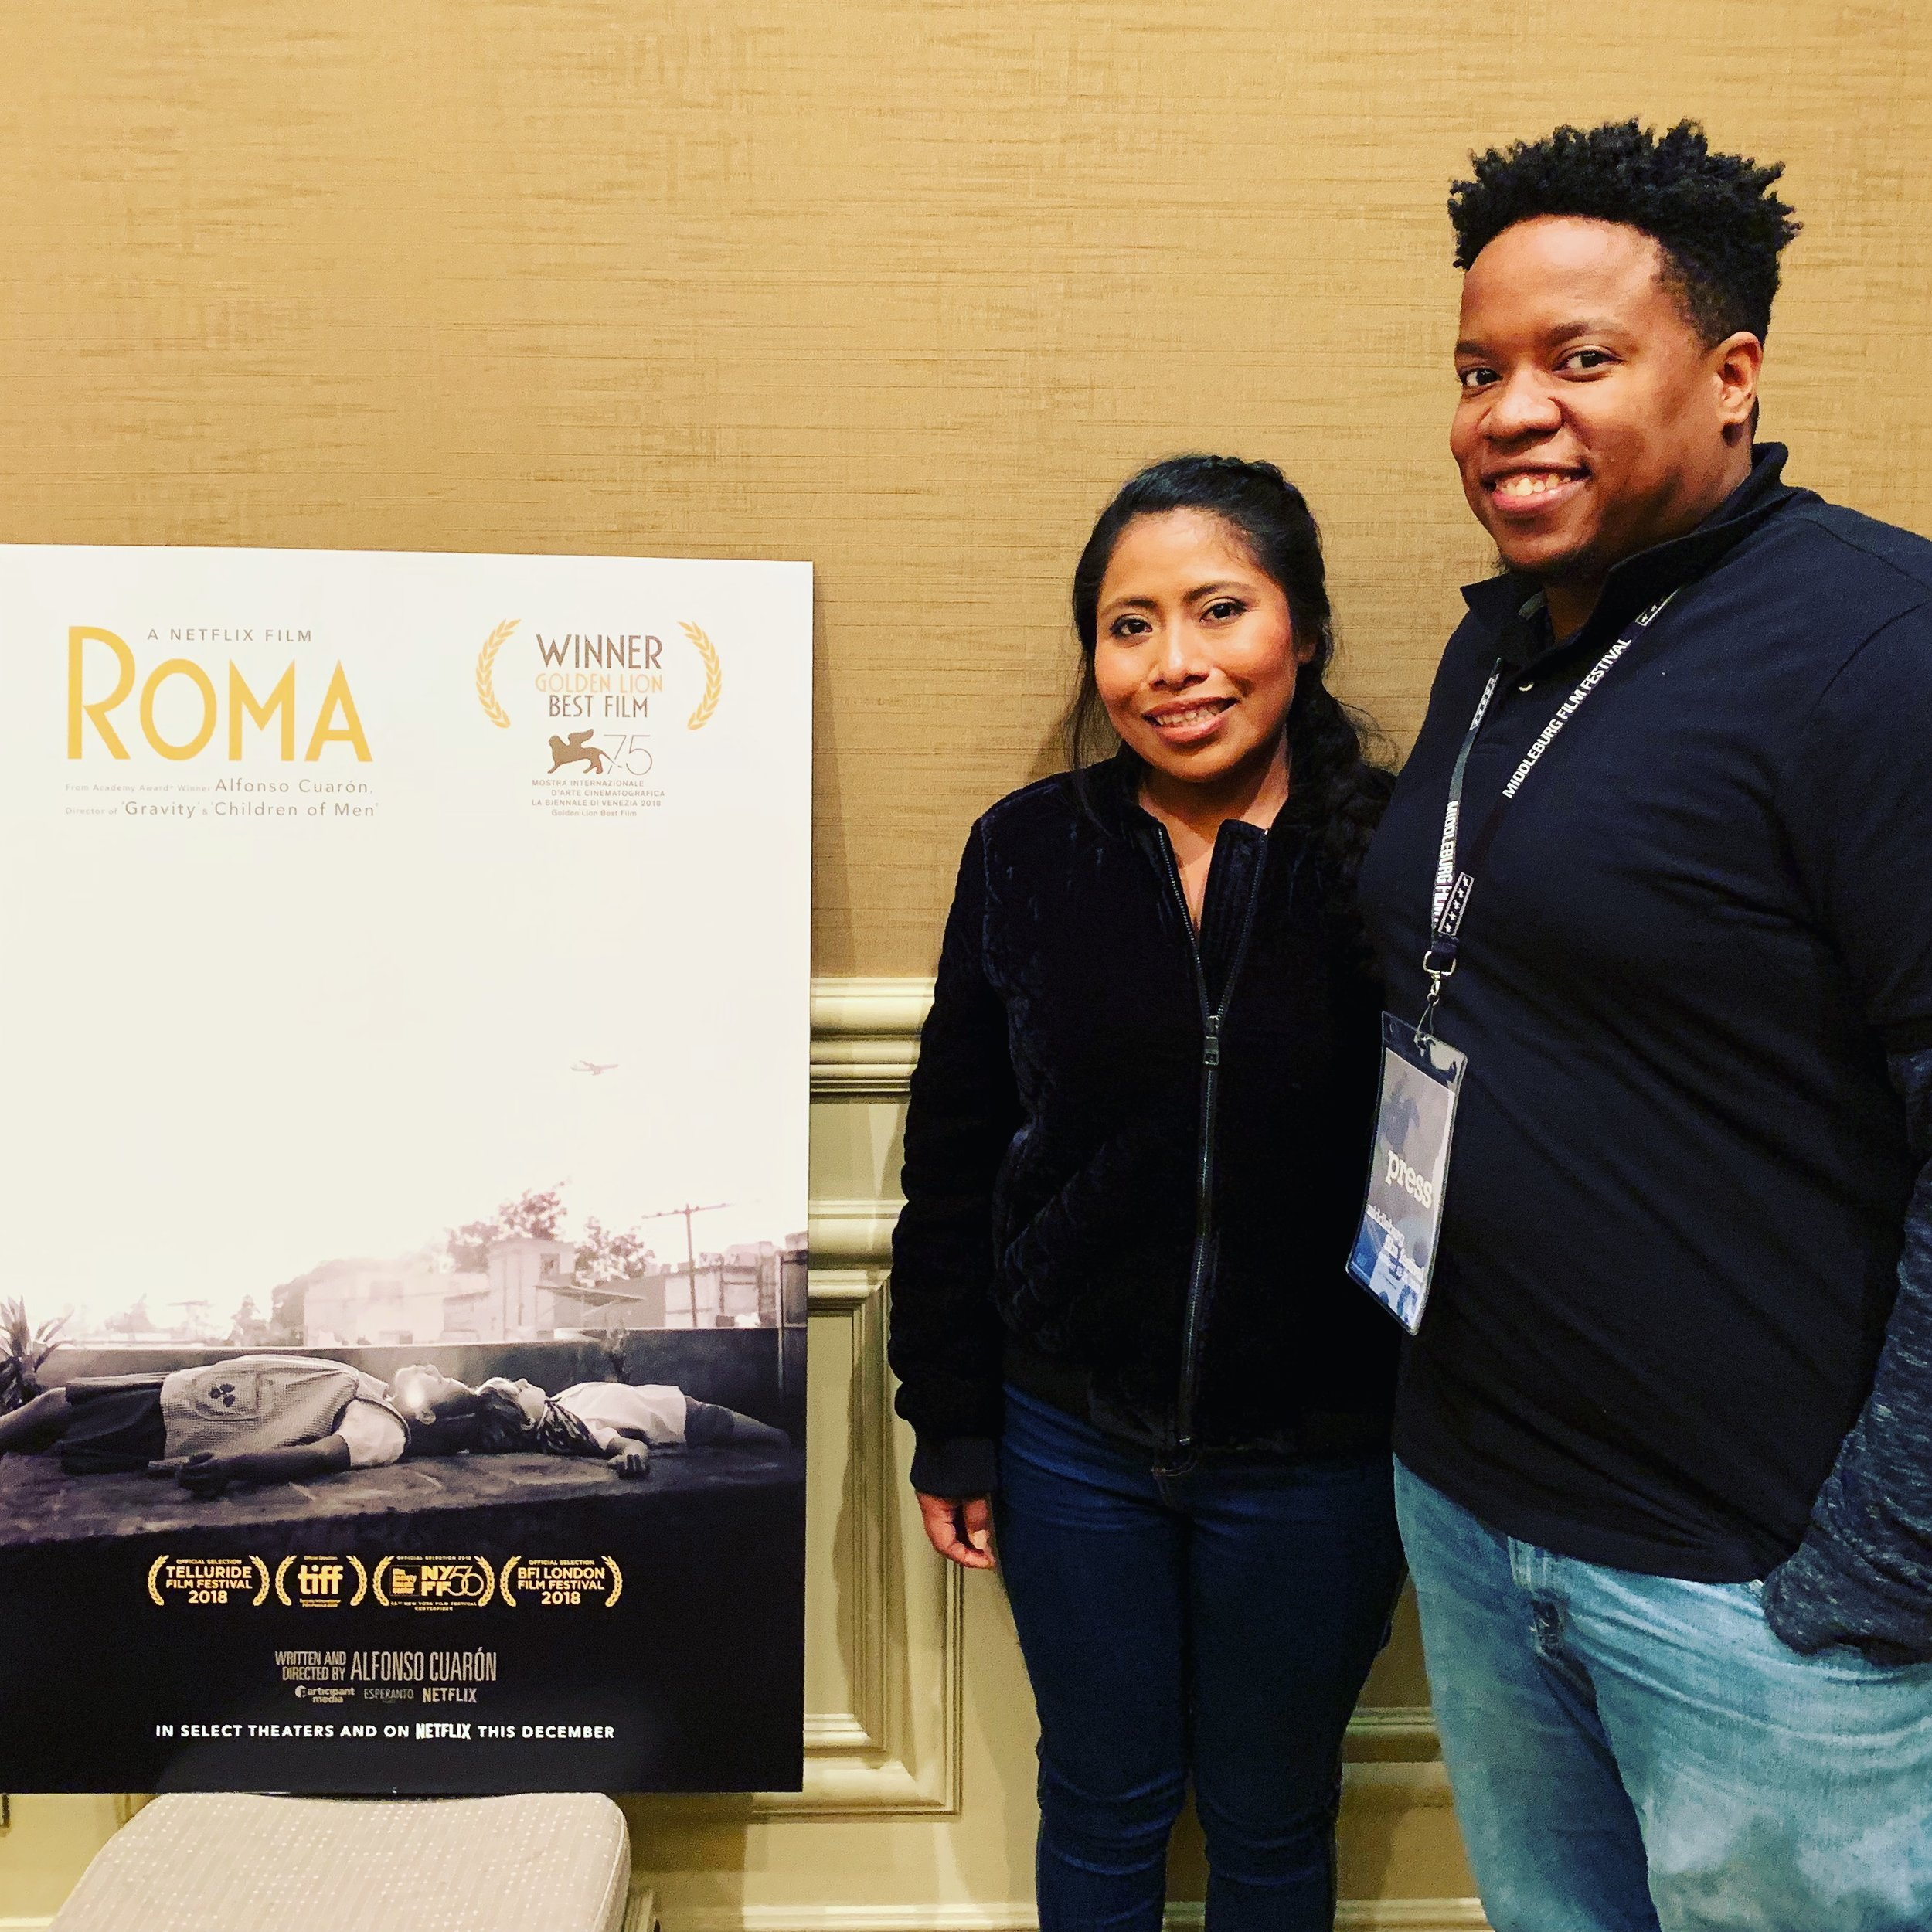 Picture Lock Unlocked: Interview w/ Roma's Yalitza Apiricio (Happy